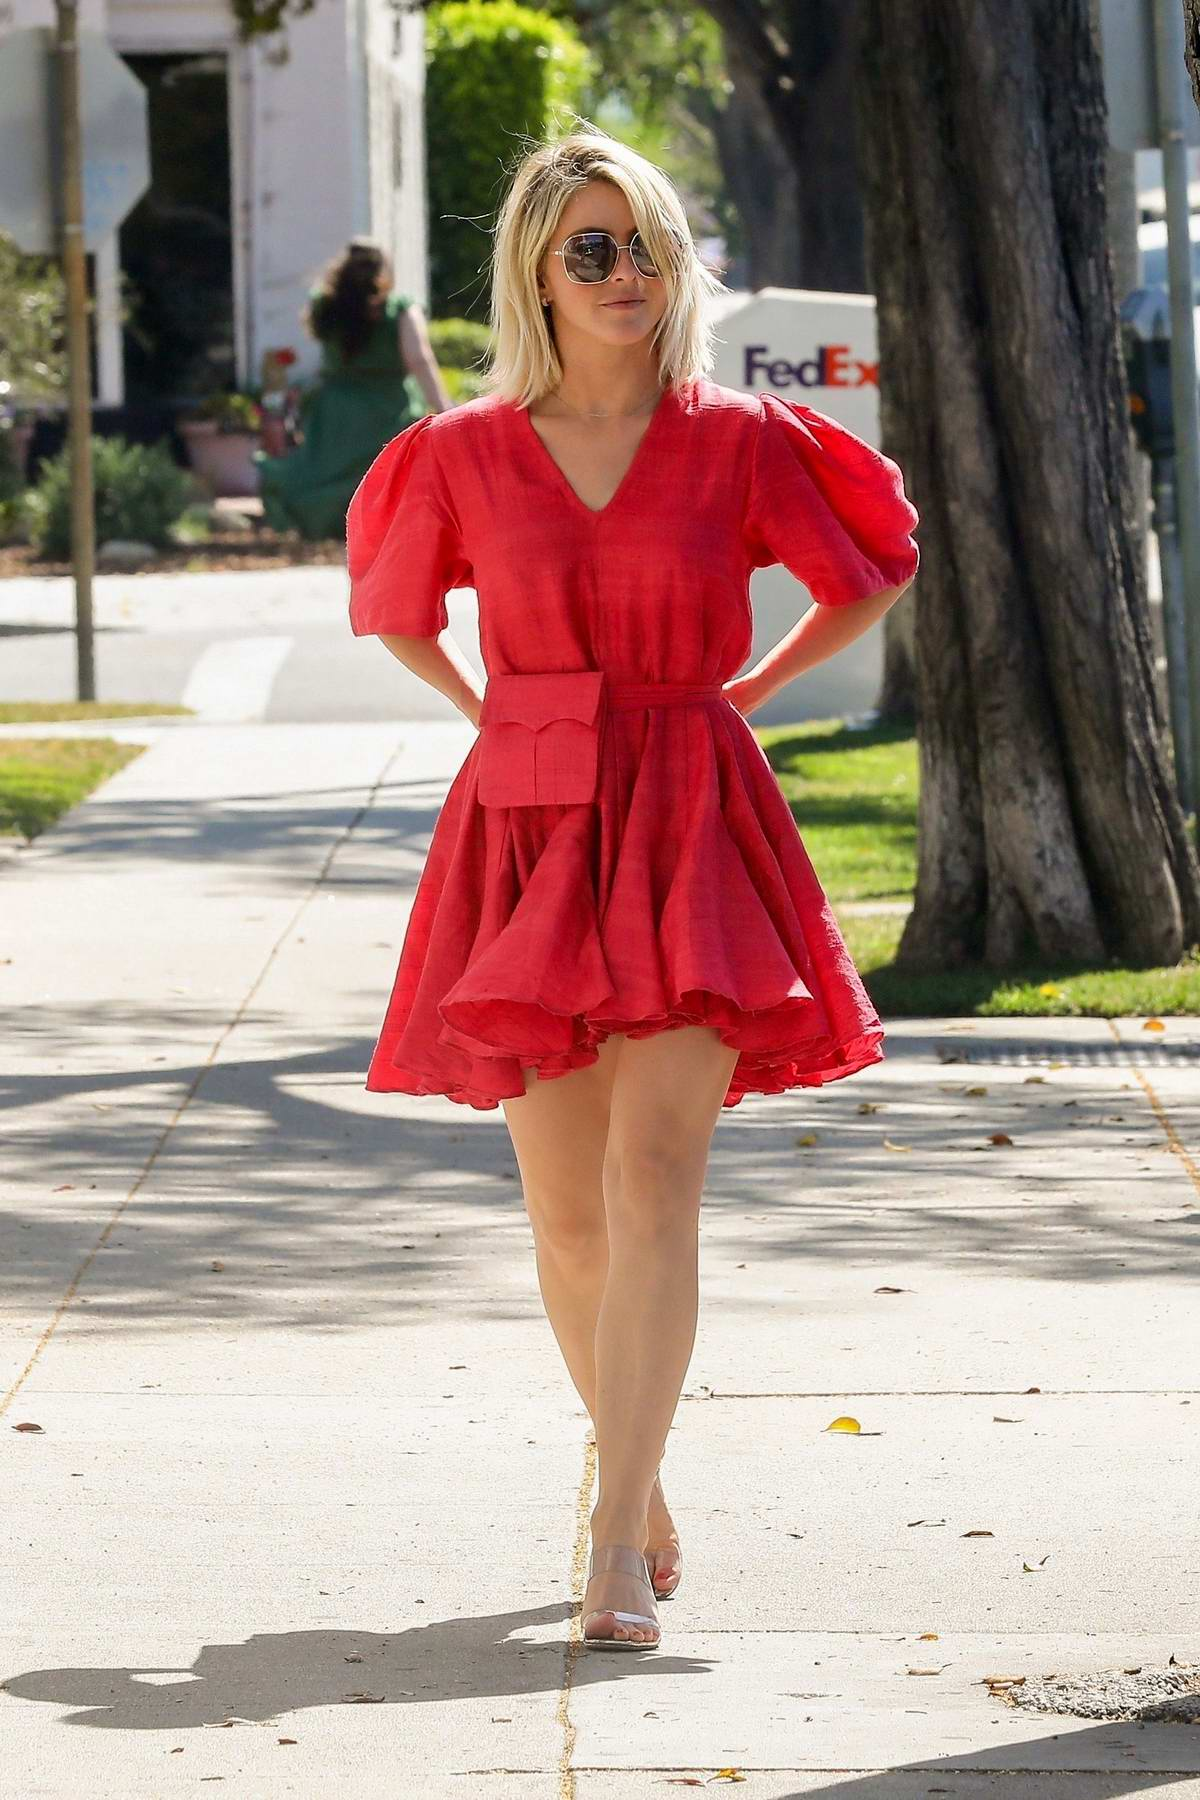 Julianne Hough looks stunning in red while visiting a talent agency in Beverly Hills, Los Angeles